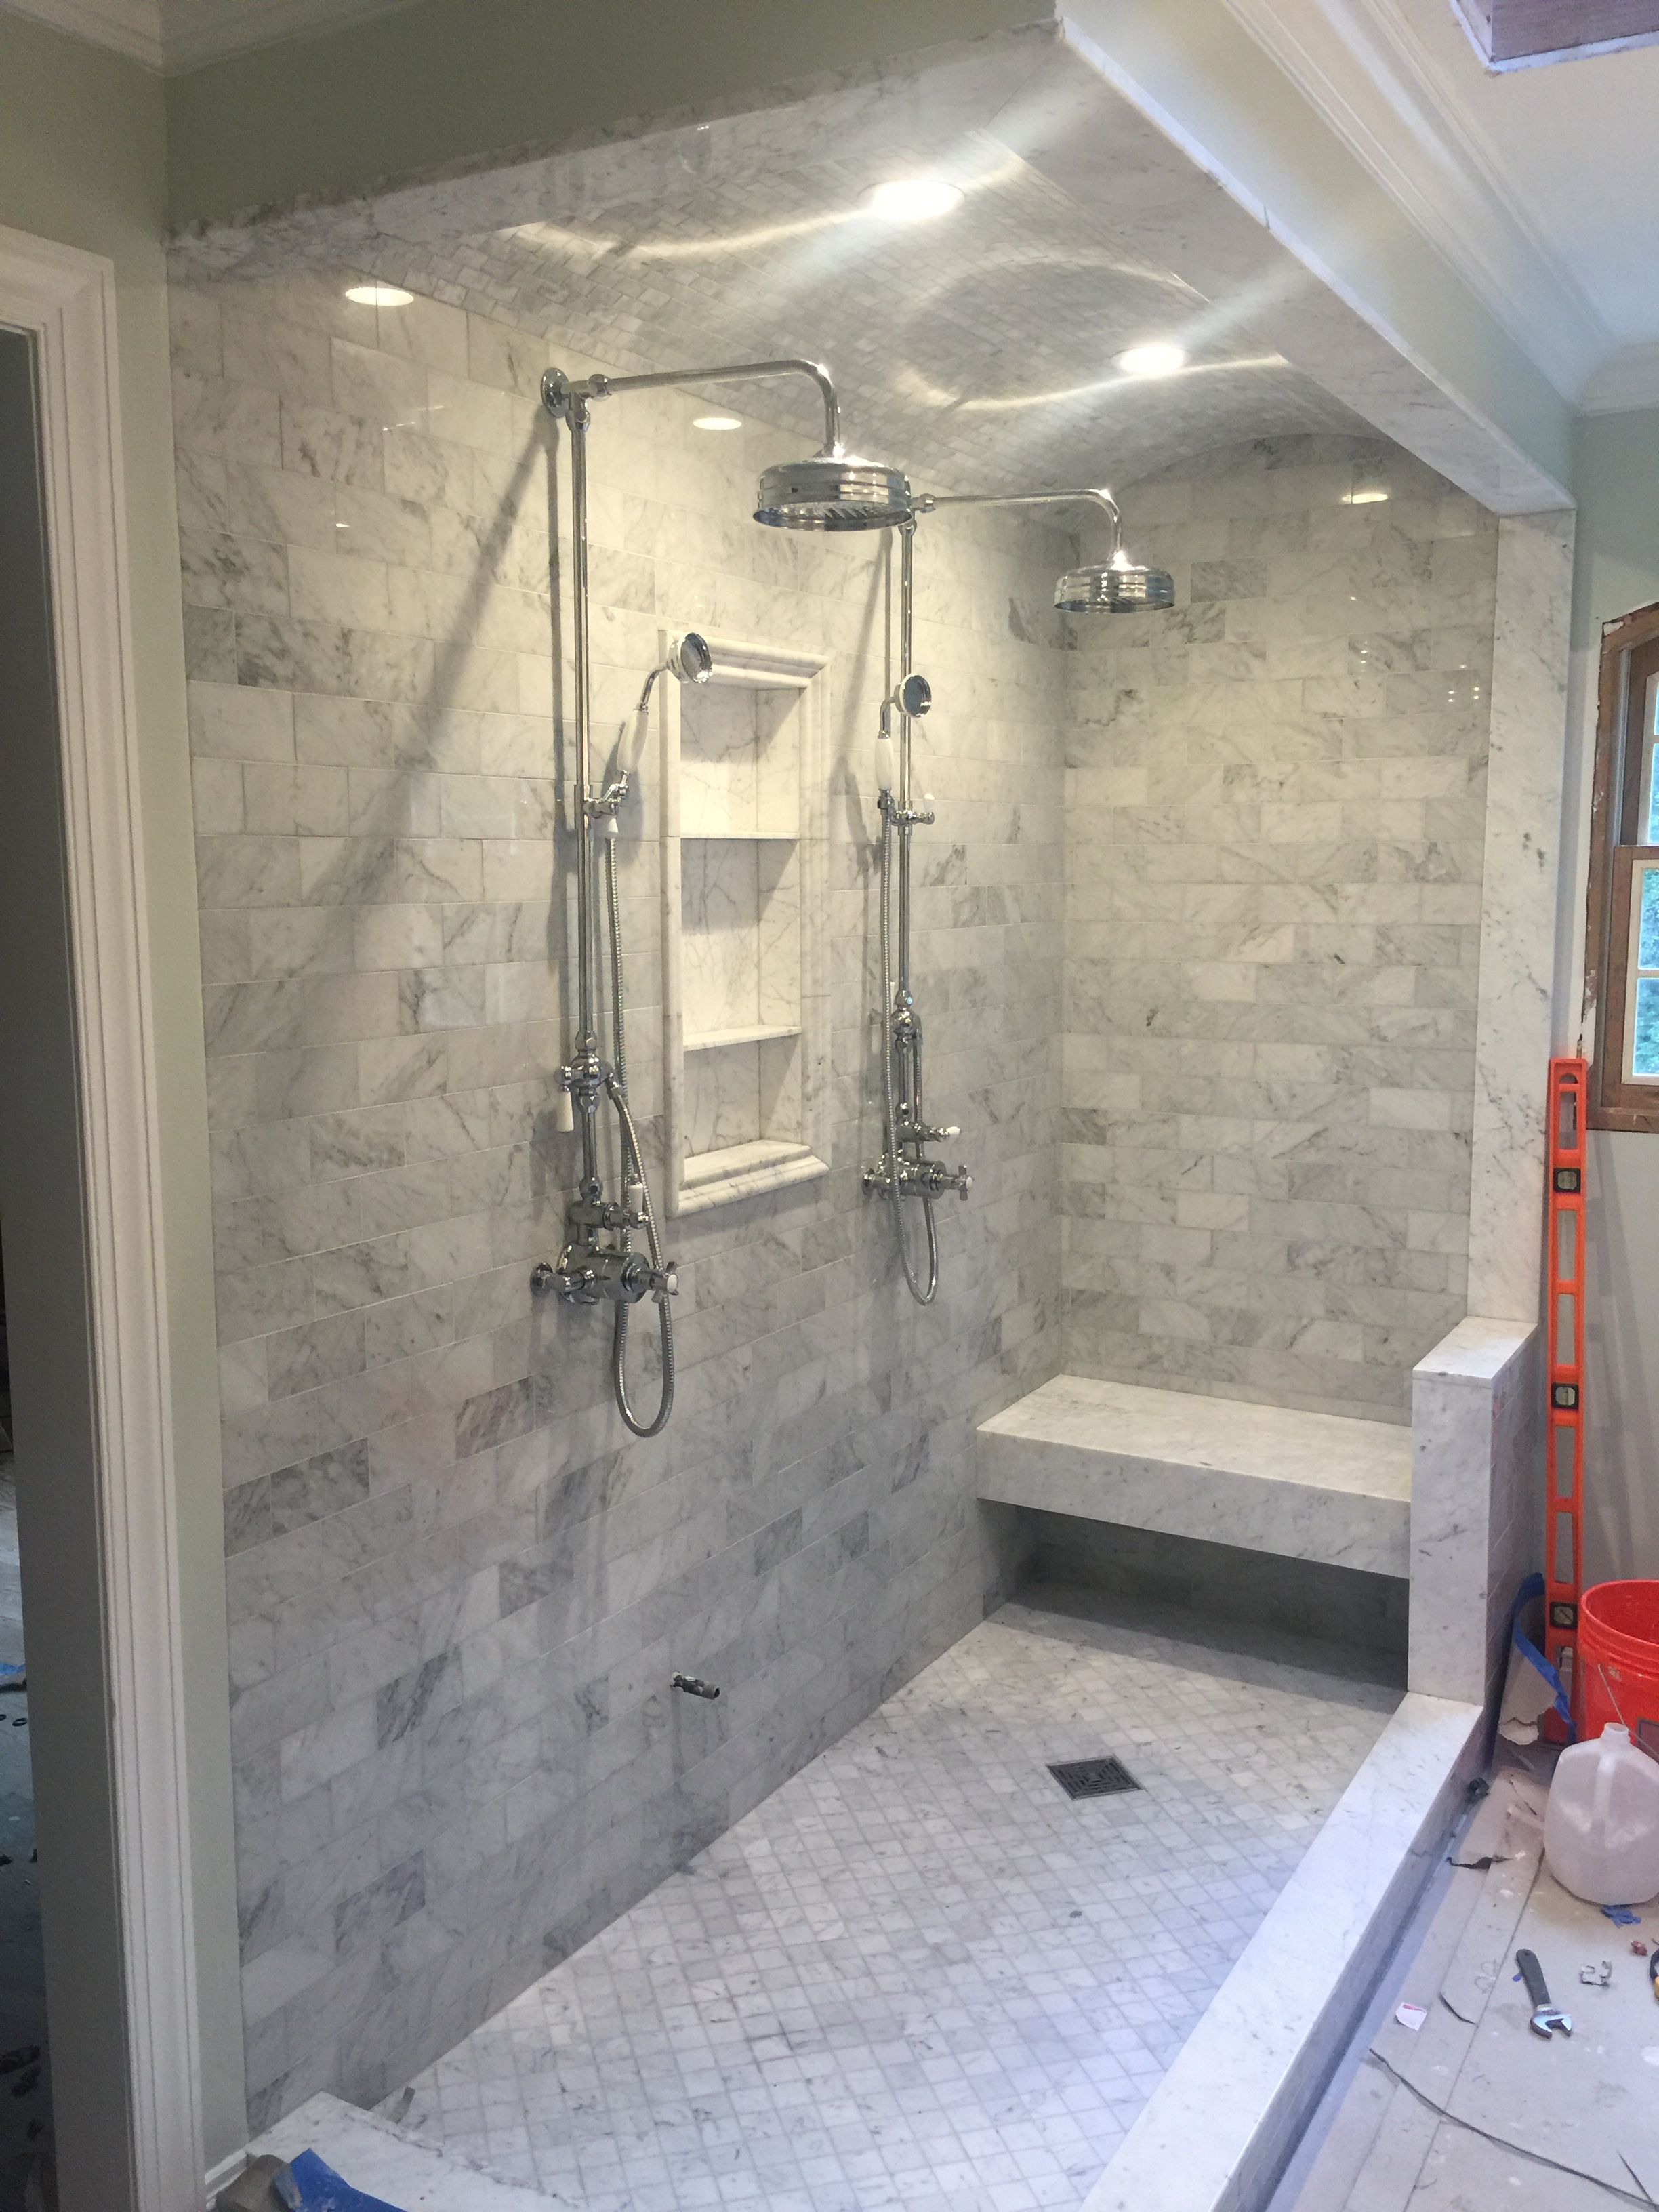 Barrel shower ceiling with dual thermostatic shower heads | Bathroom remodel shower, Bathroom shower tile, Shower remodel